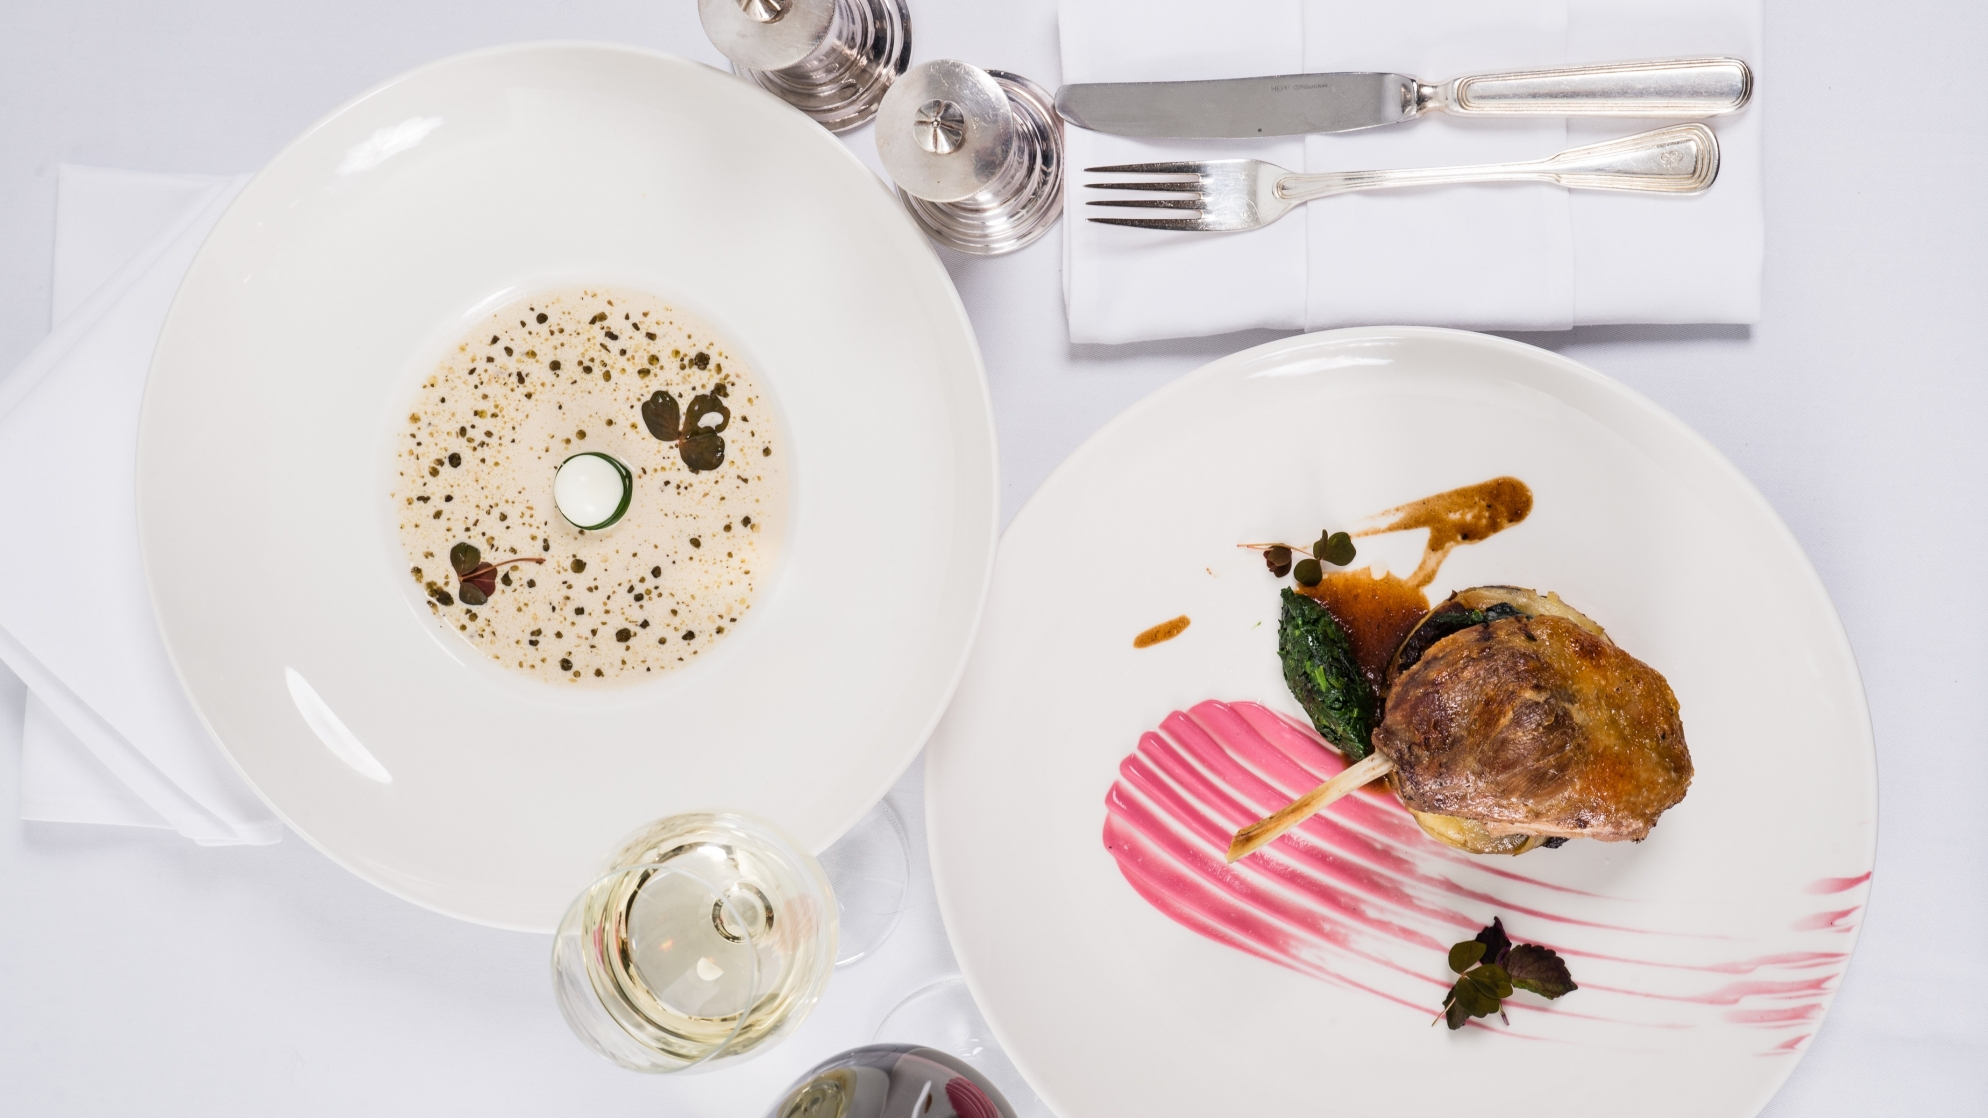 DELIGHT YOURSELF WITH 2-COURSE MENU FOR 65 PLN - Marconi restaurant in Warsaw